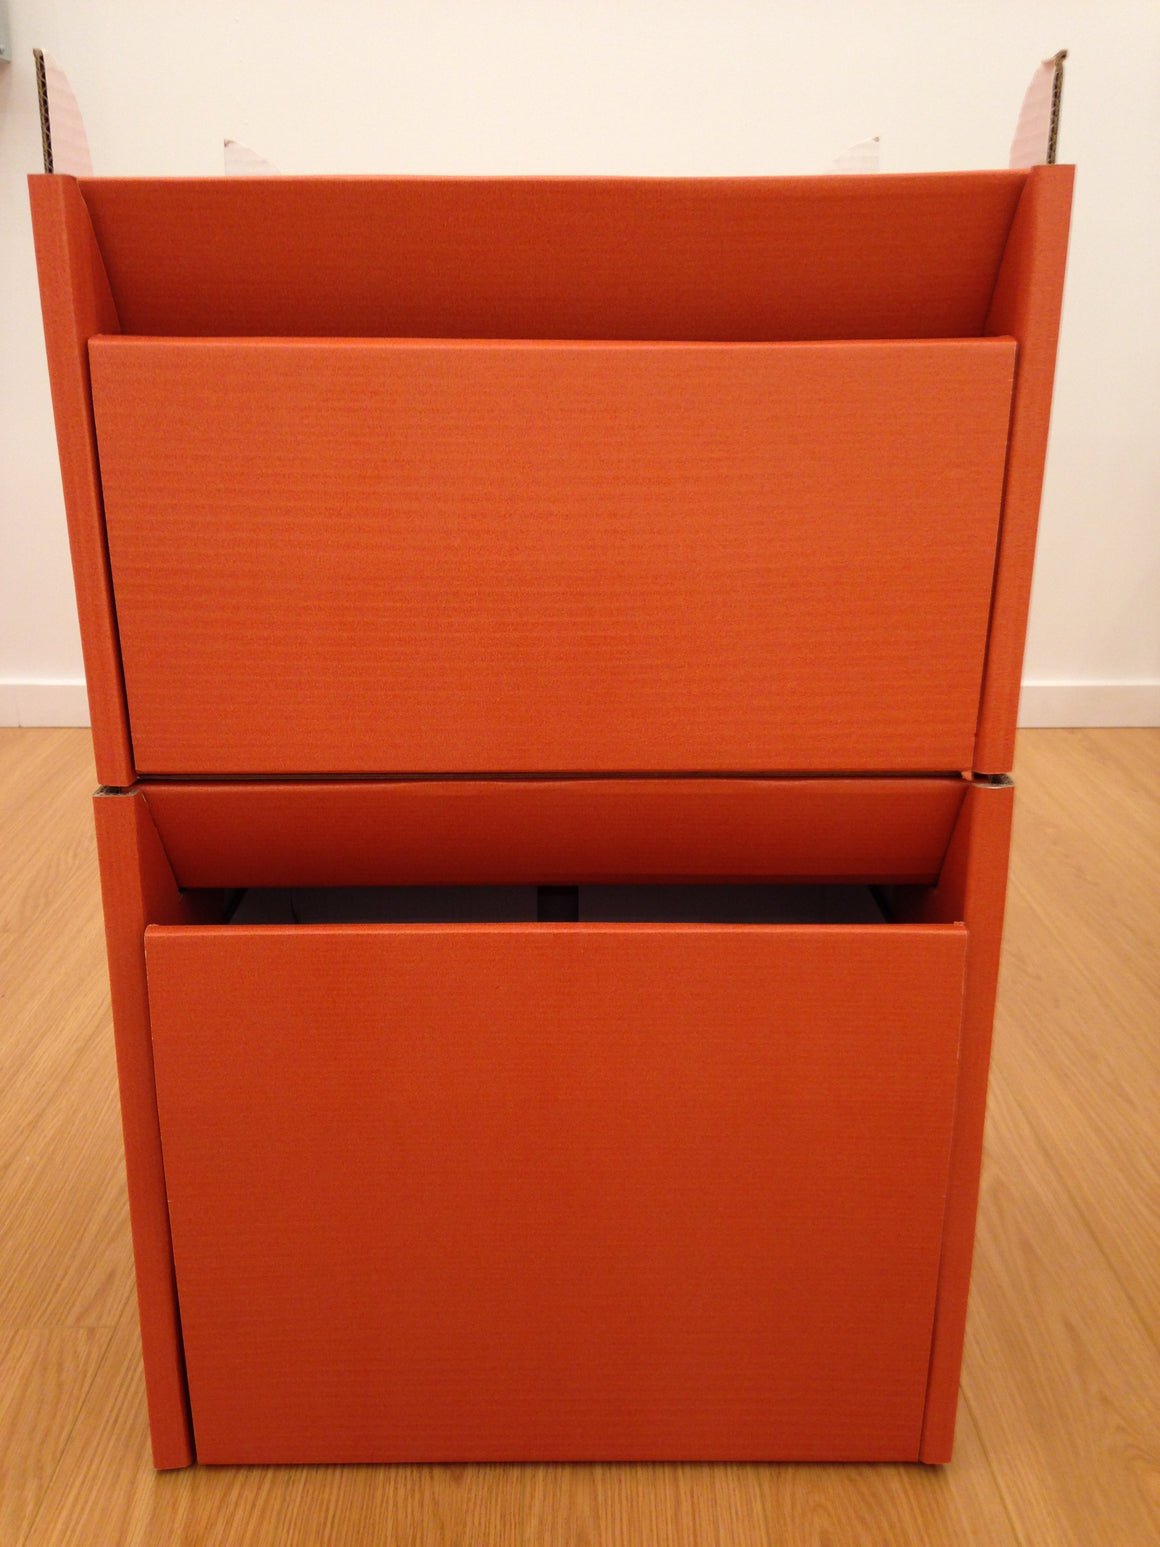 Stackable Modular Carboard Cabinet